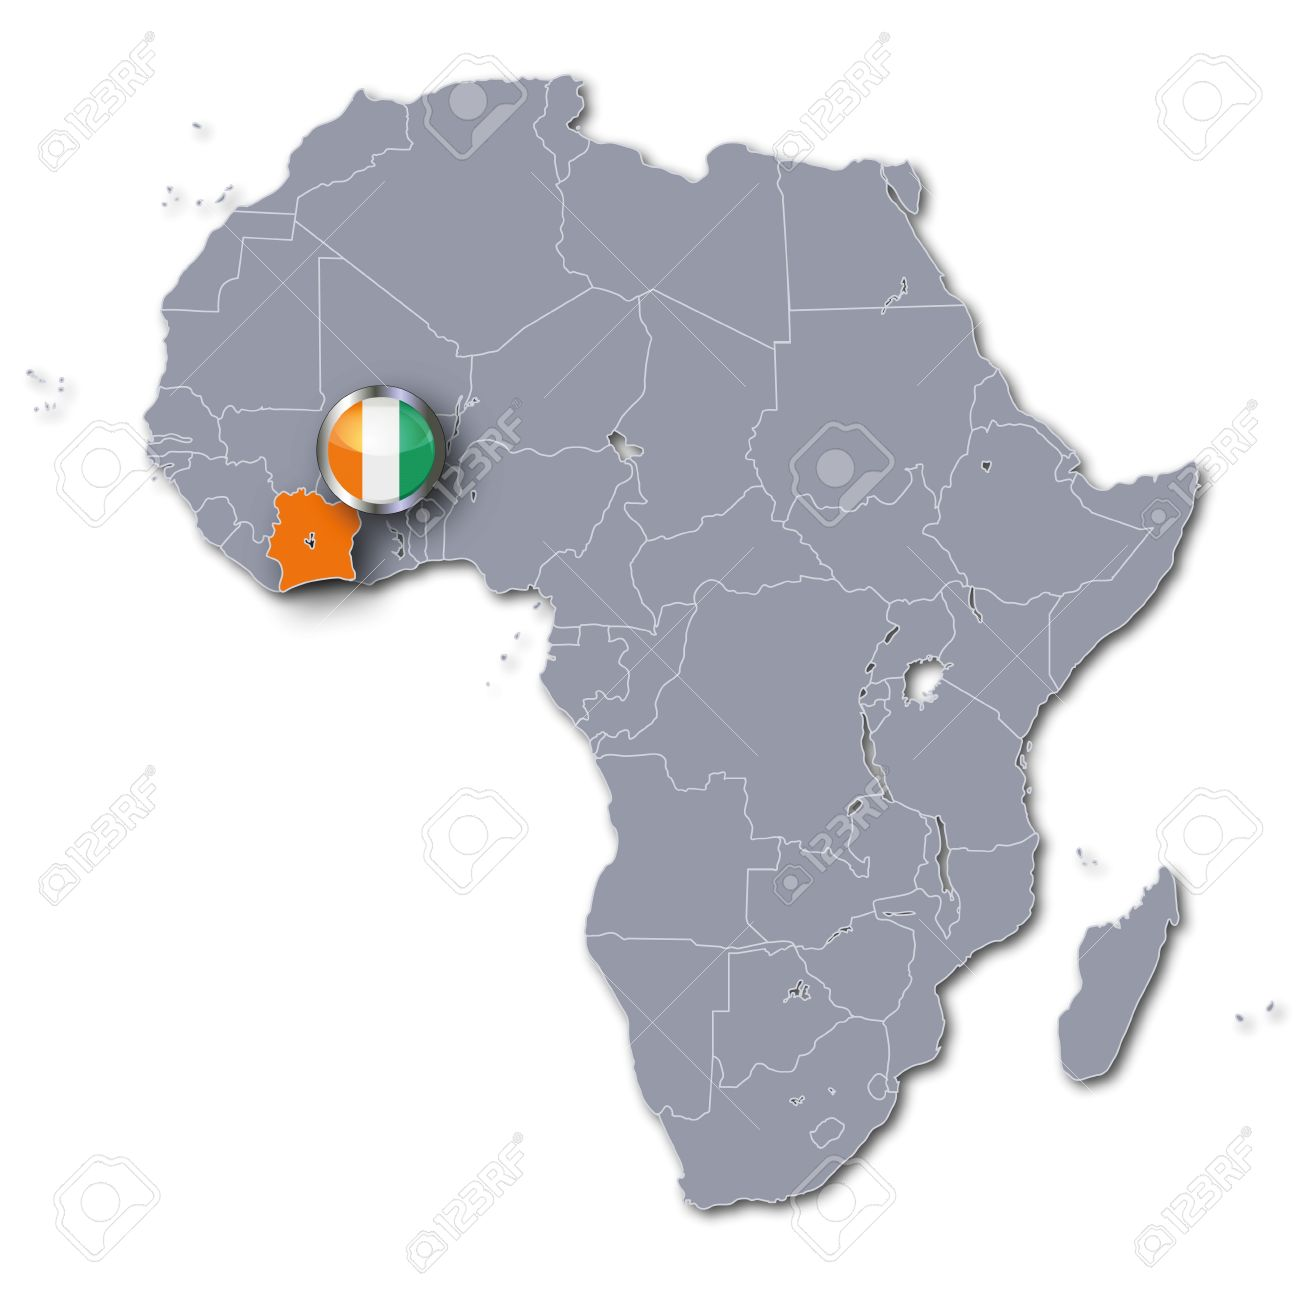 Button Africa Map With Ivory Coast Stock Photo, Picture And Royalty ...